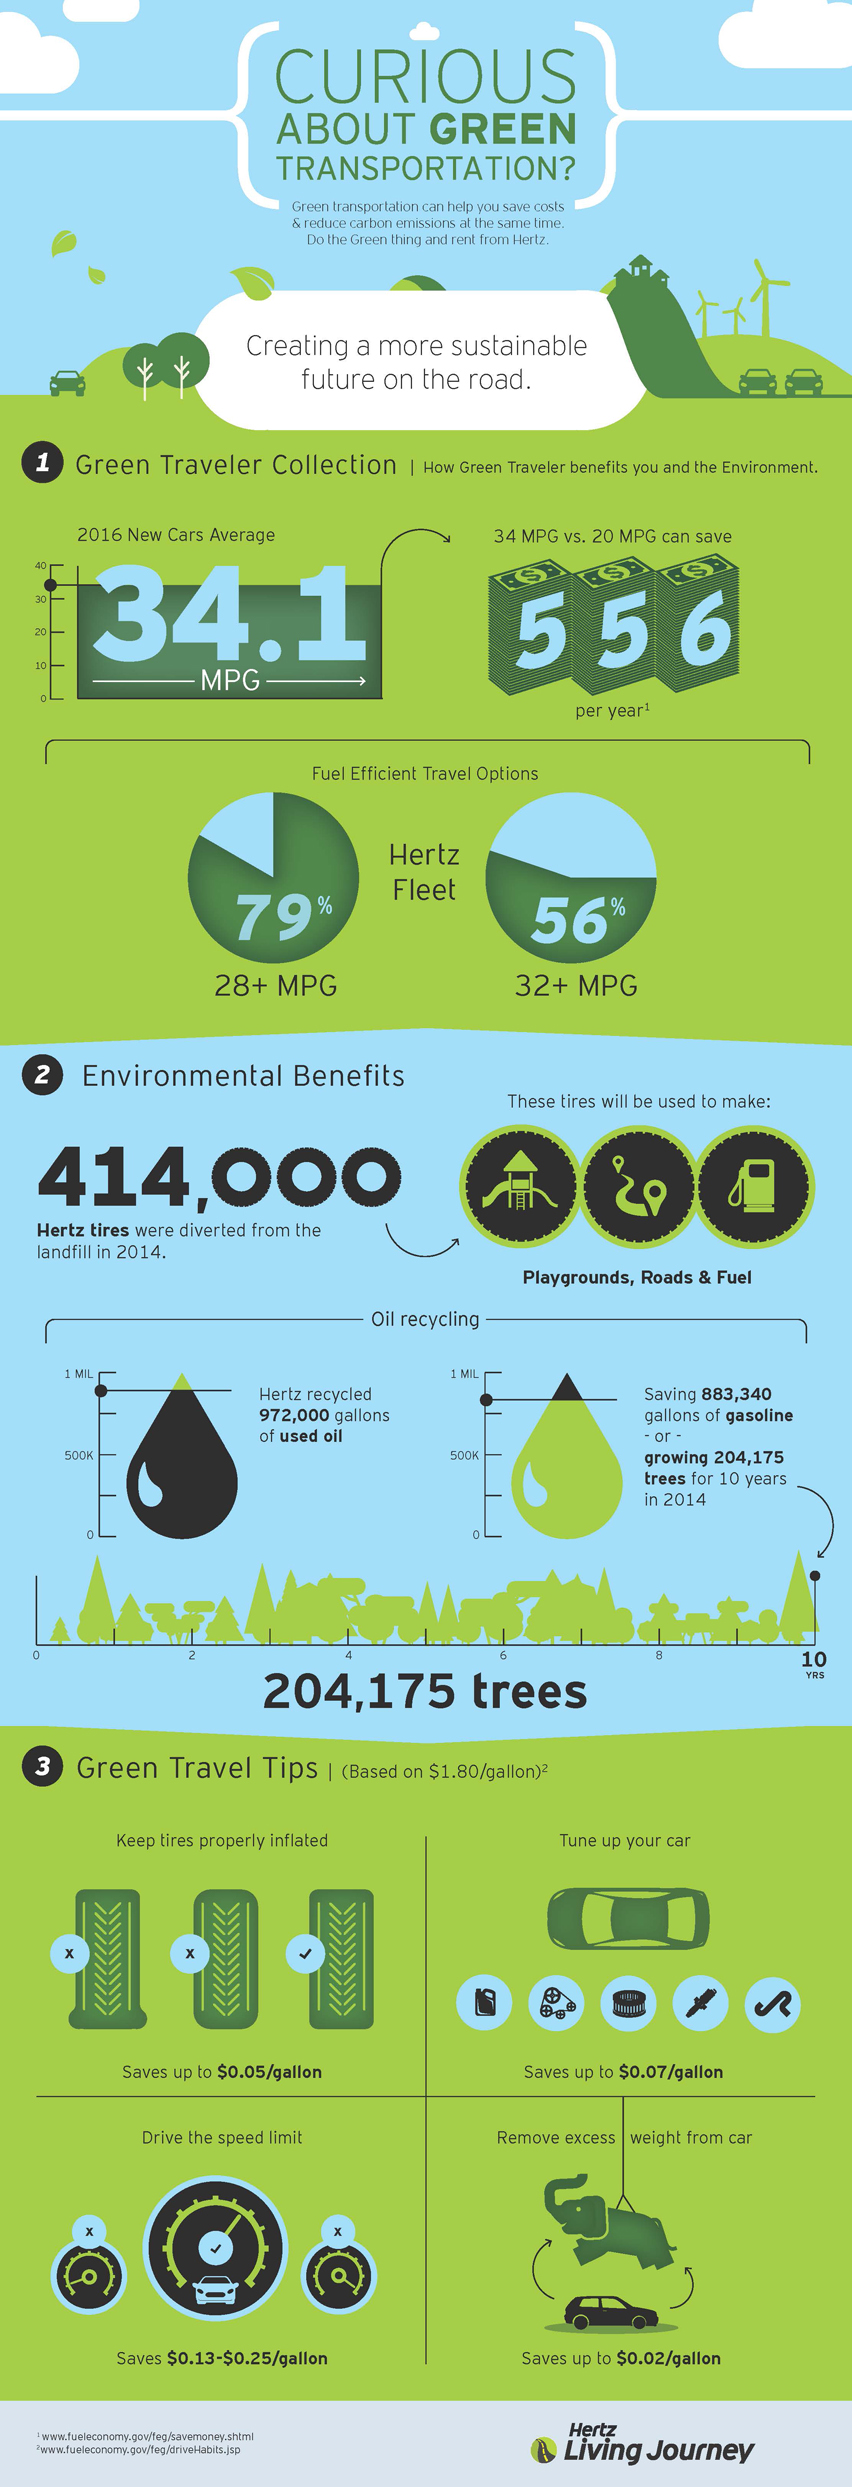 Hertz Green Transportation infographic. It illustrates how car sharing can reduce carbon emissions.